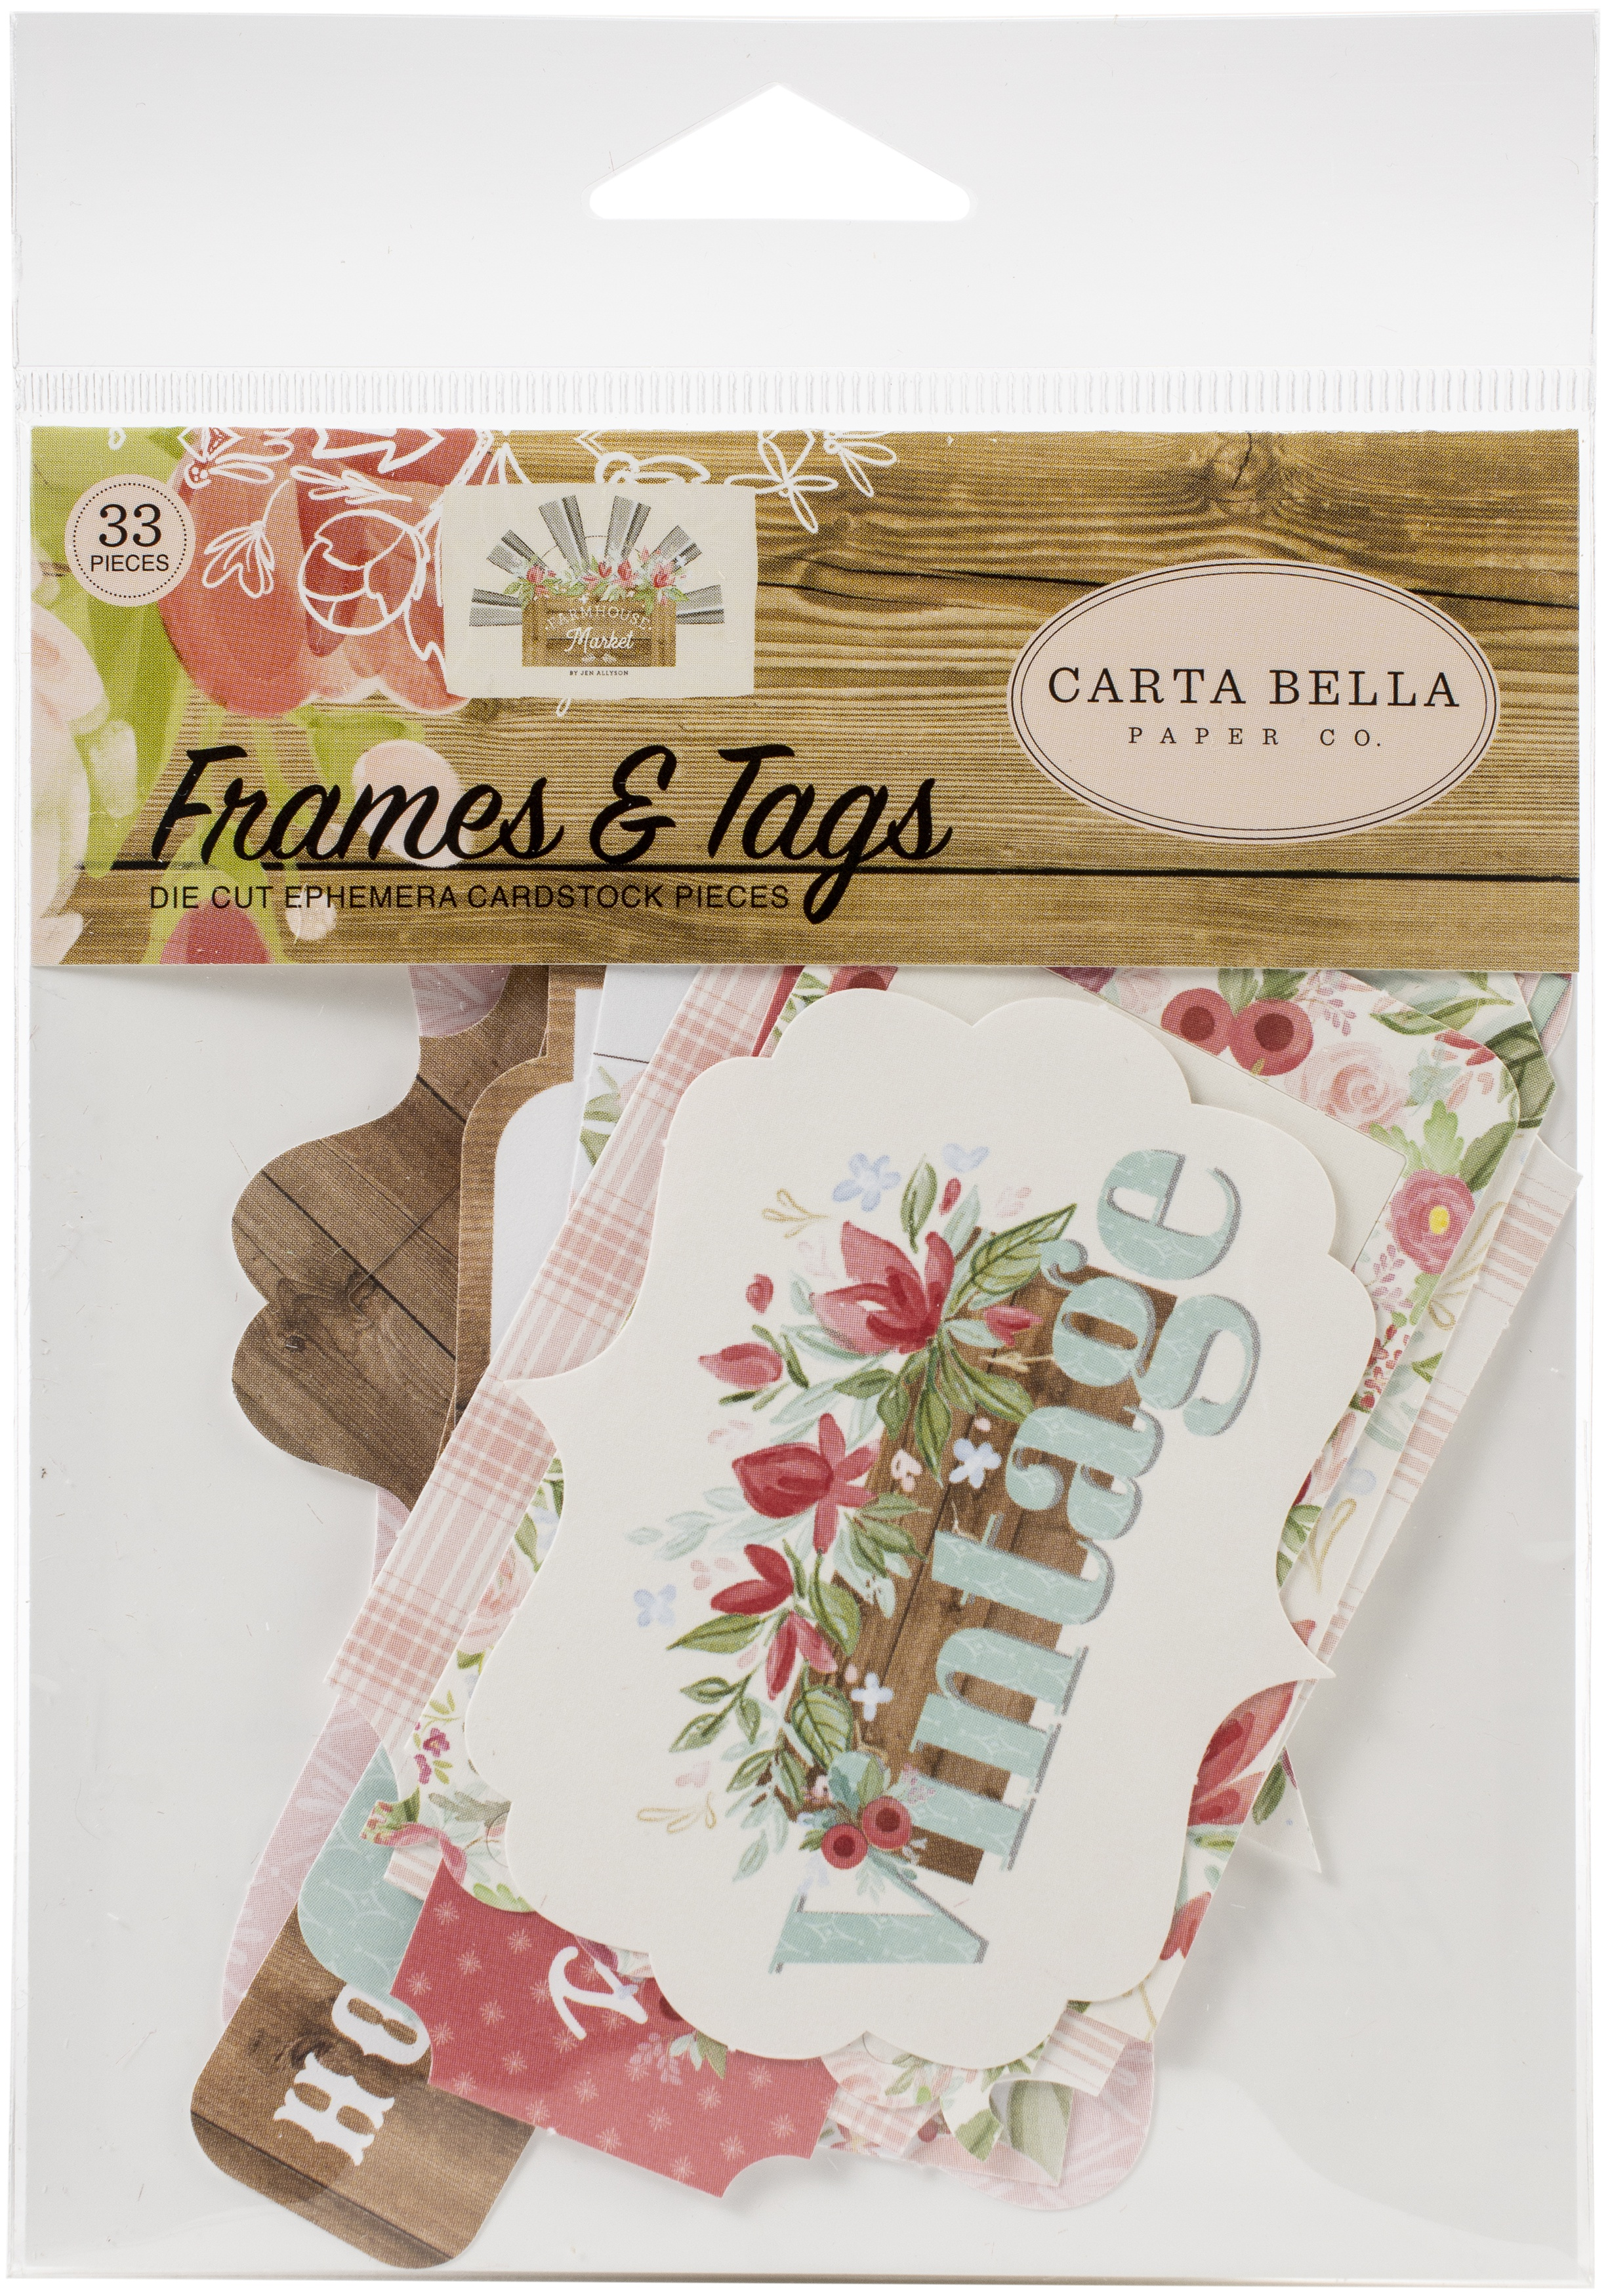 Carta Bella Cardstock Ephemera 33/Pkg-Frames & Tags, Farmhouse Market